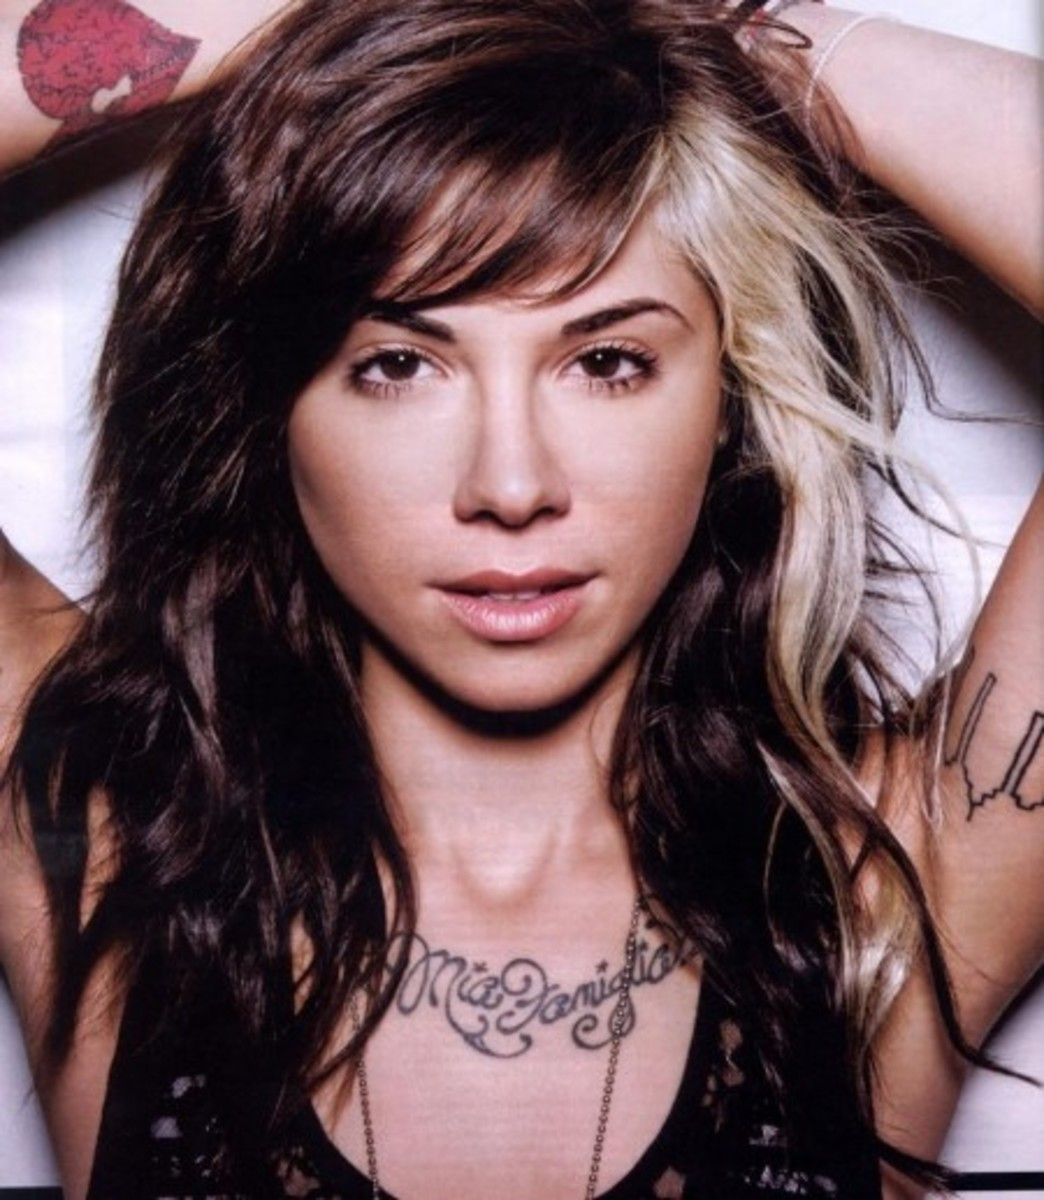 Christina Perri with streaked hair on her left side.